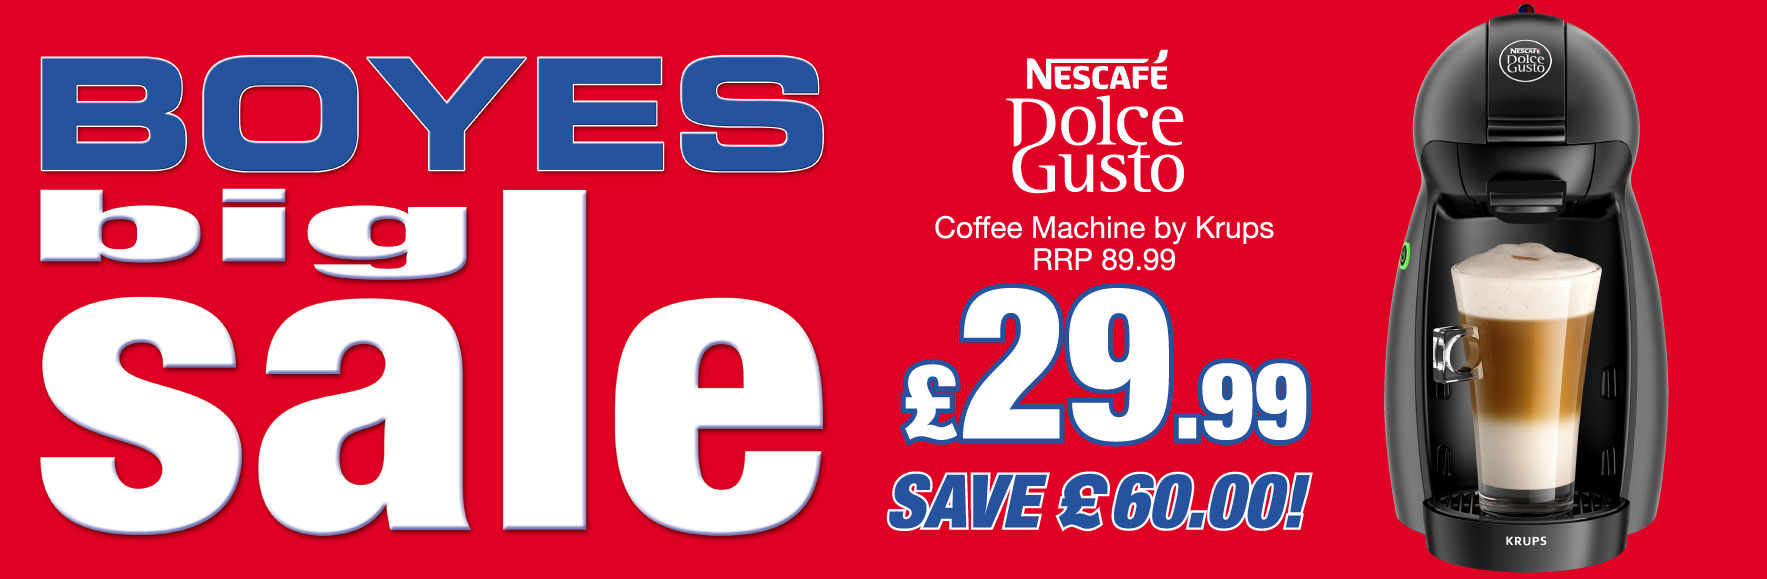 Nescafe Dolce Gusto Coffee machine by Krups. RRP £89.99. ONLY £29.99. Save £60!